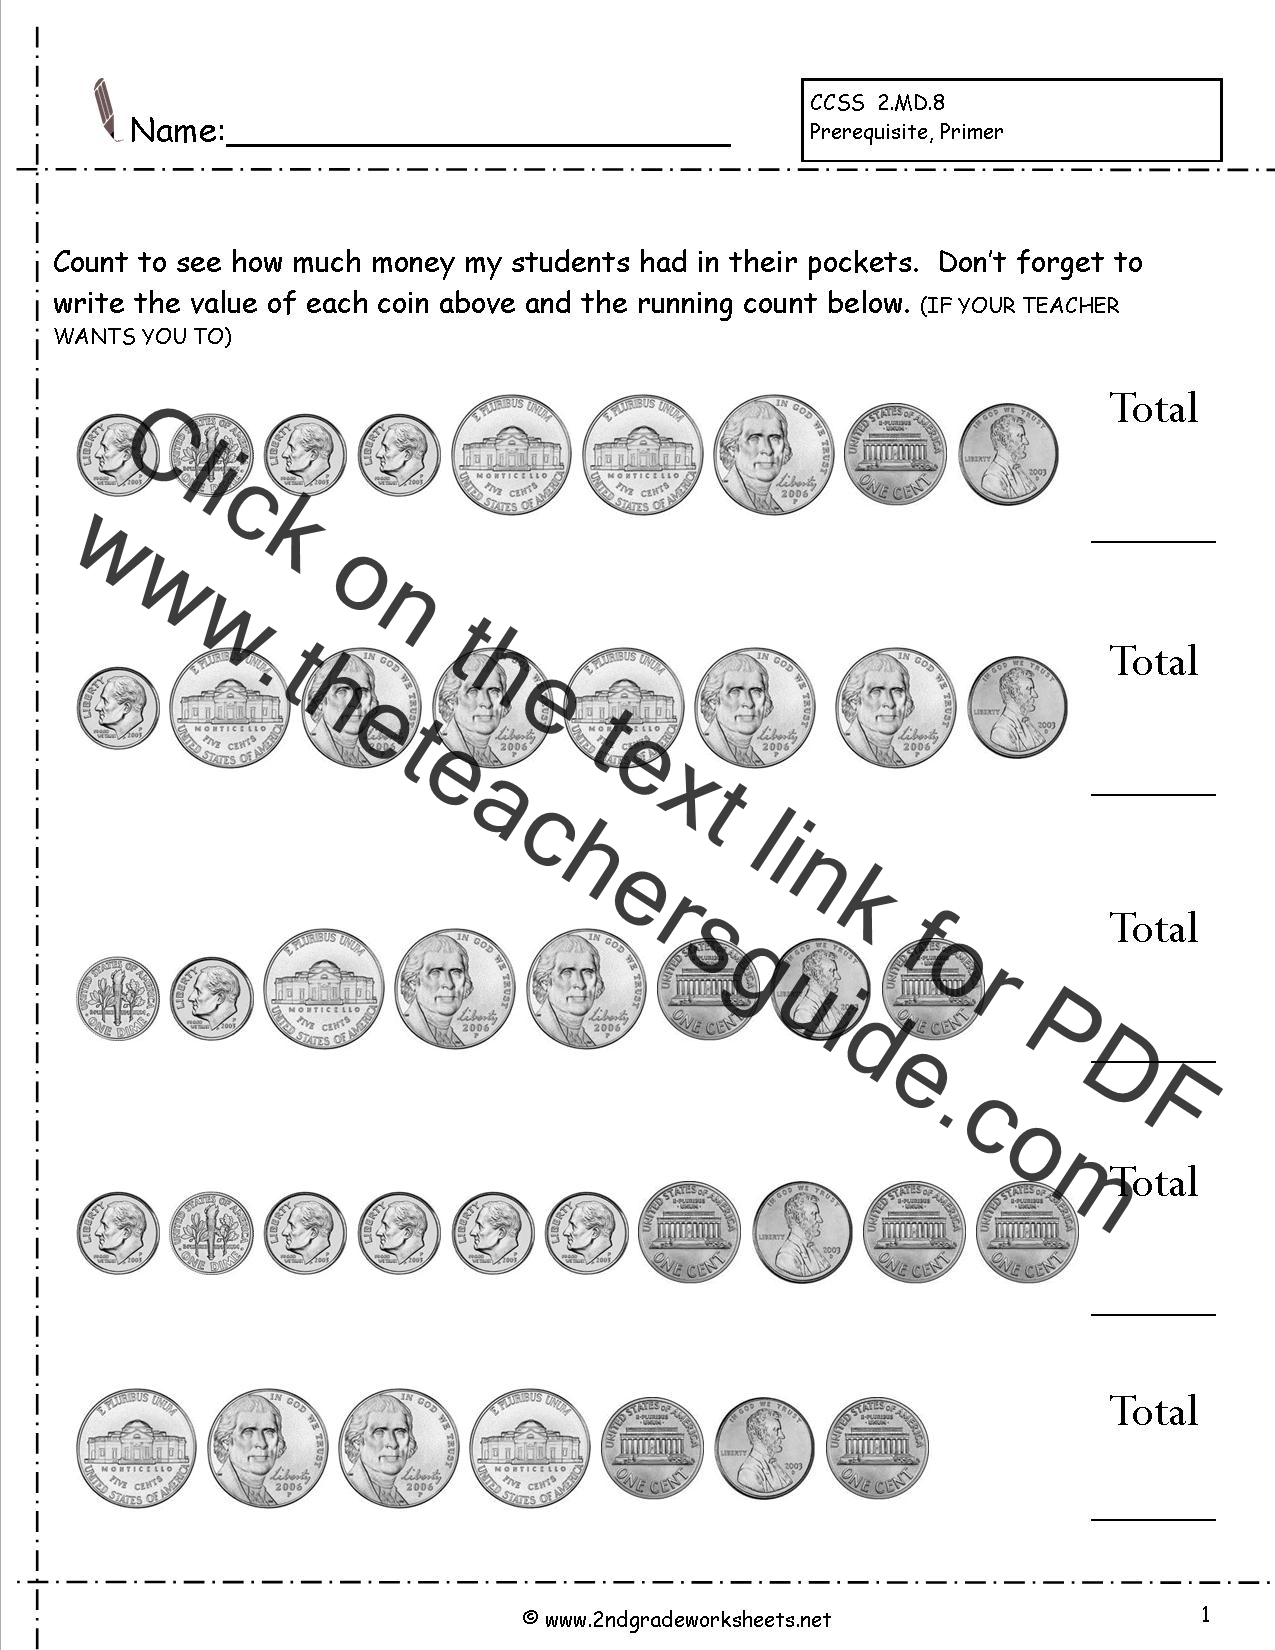 Worksheets Counting Coins Worksheets 2nd Grade counting coins and money worksheets printouts without quarters